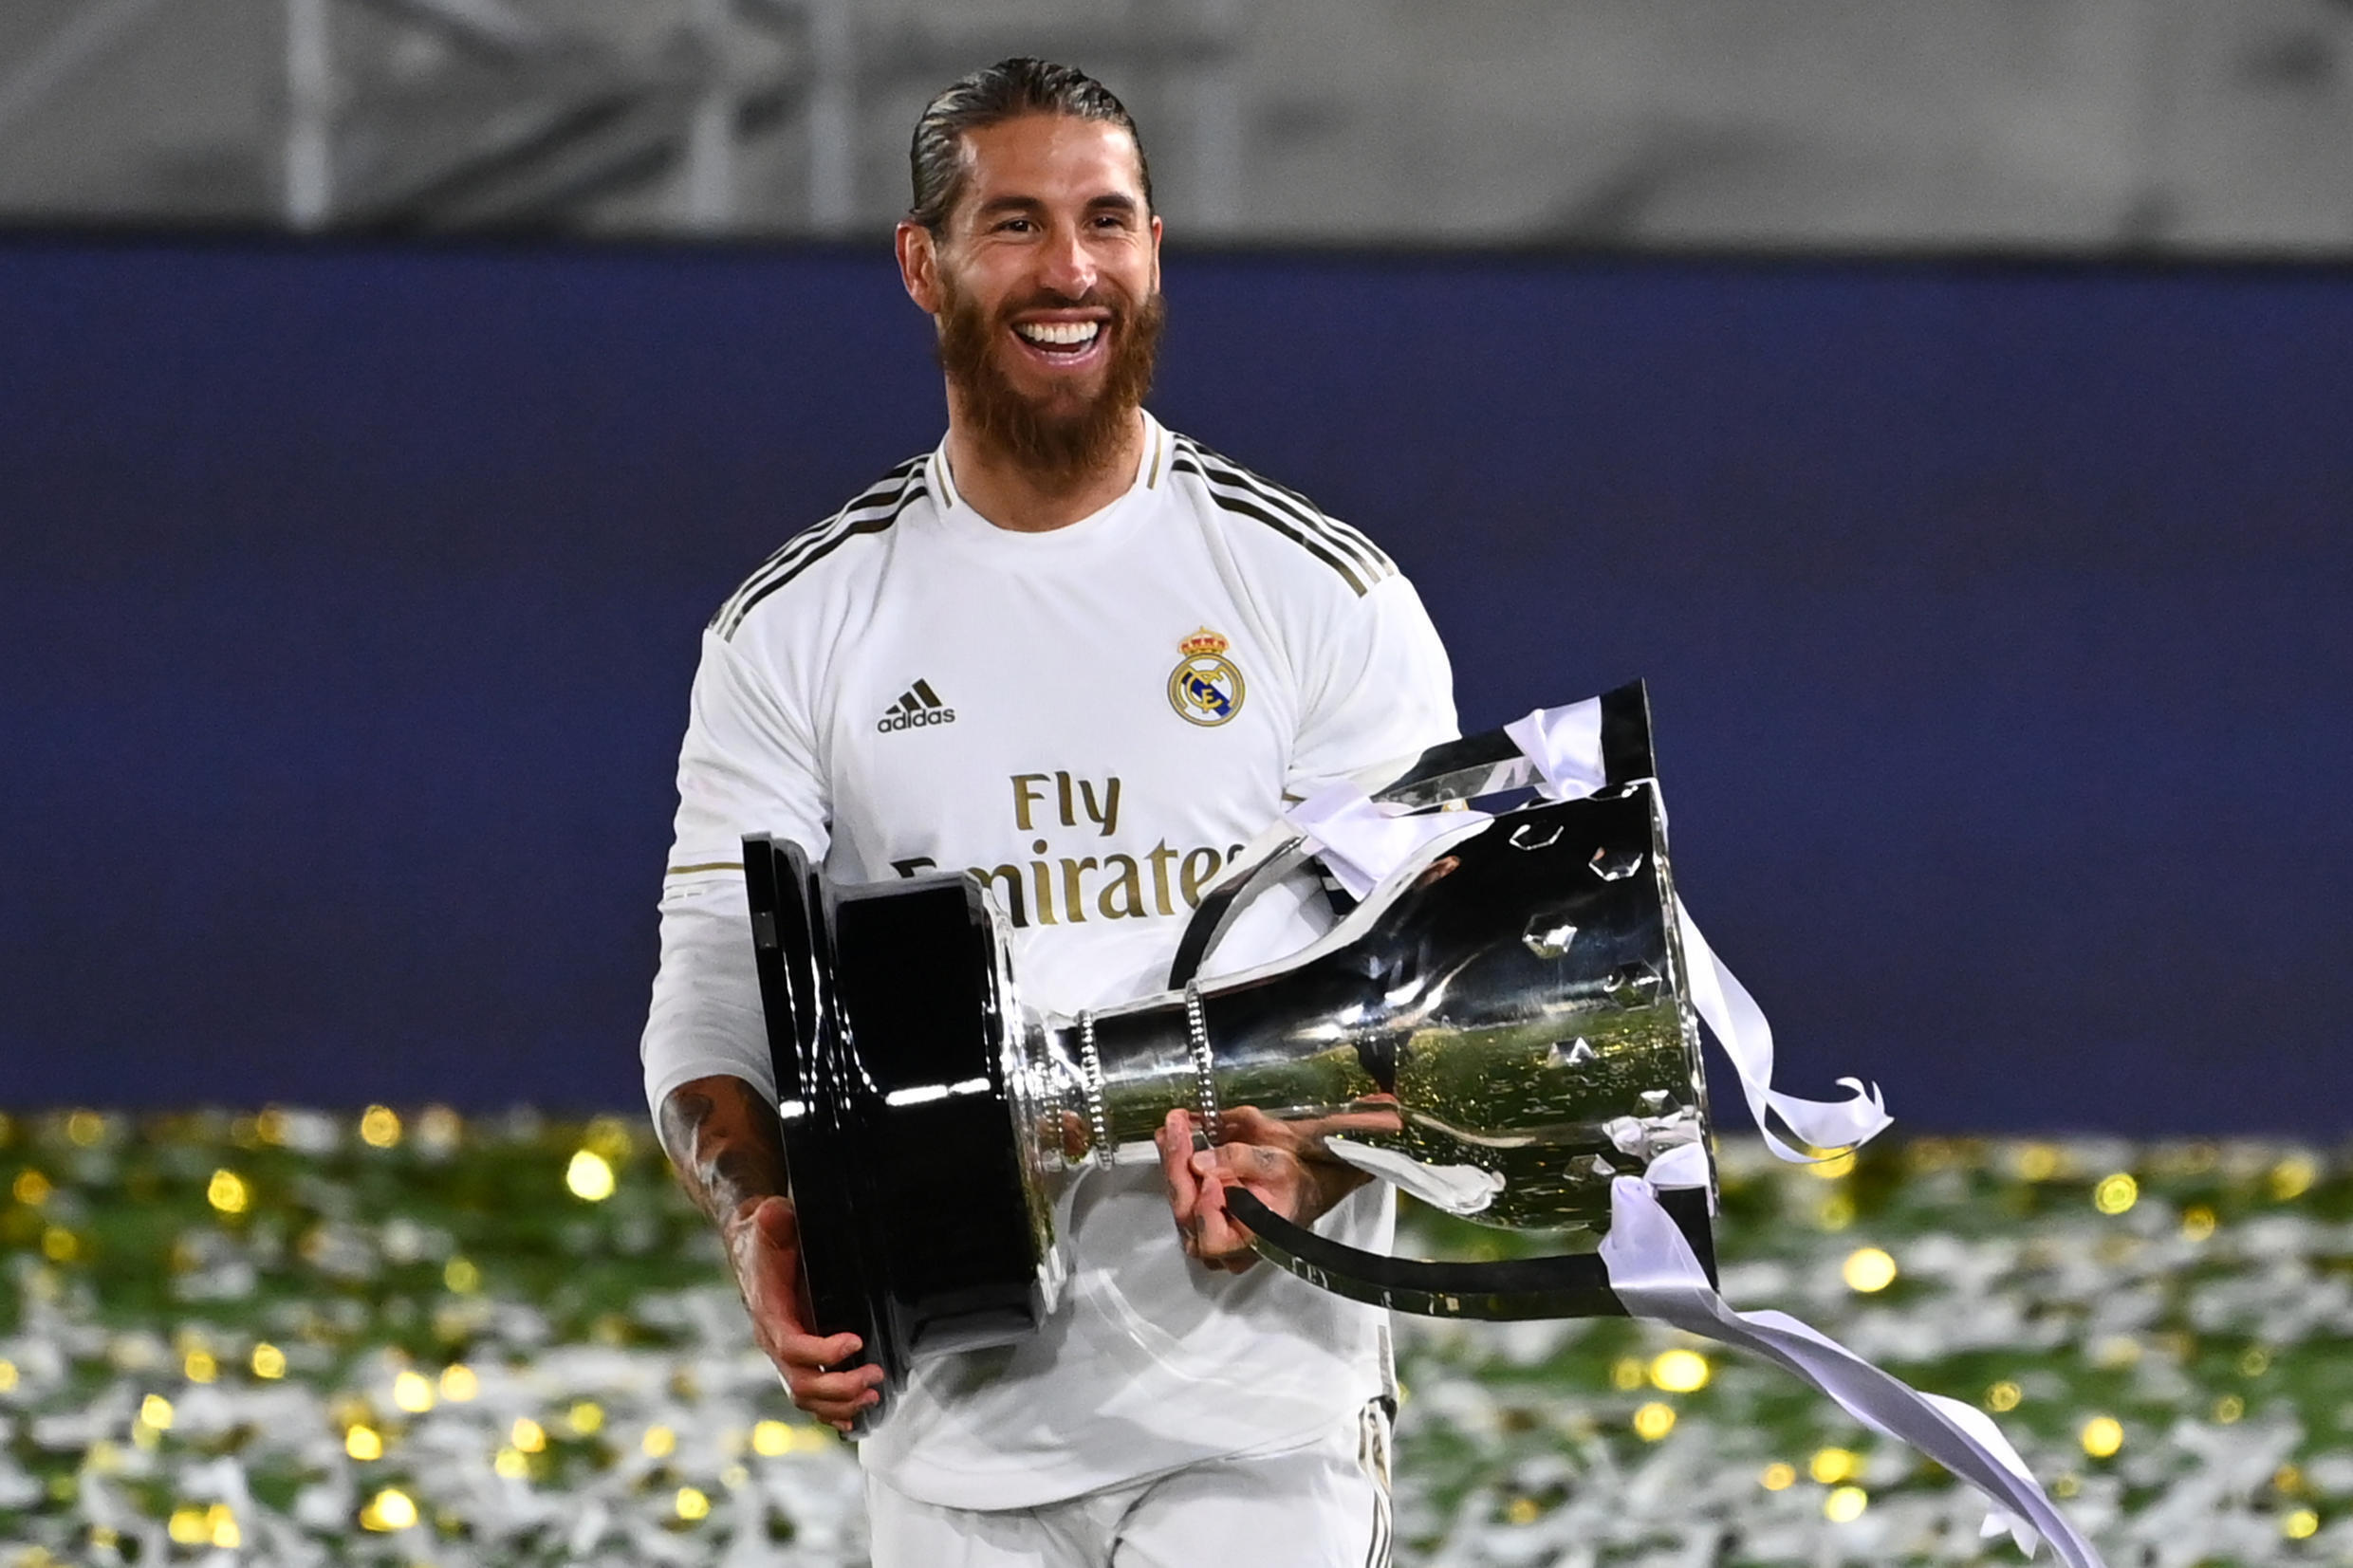 Sergio Ramos won five Spanish league titles with Real, the last of them in July 2020